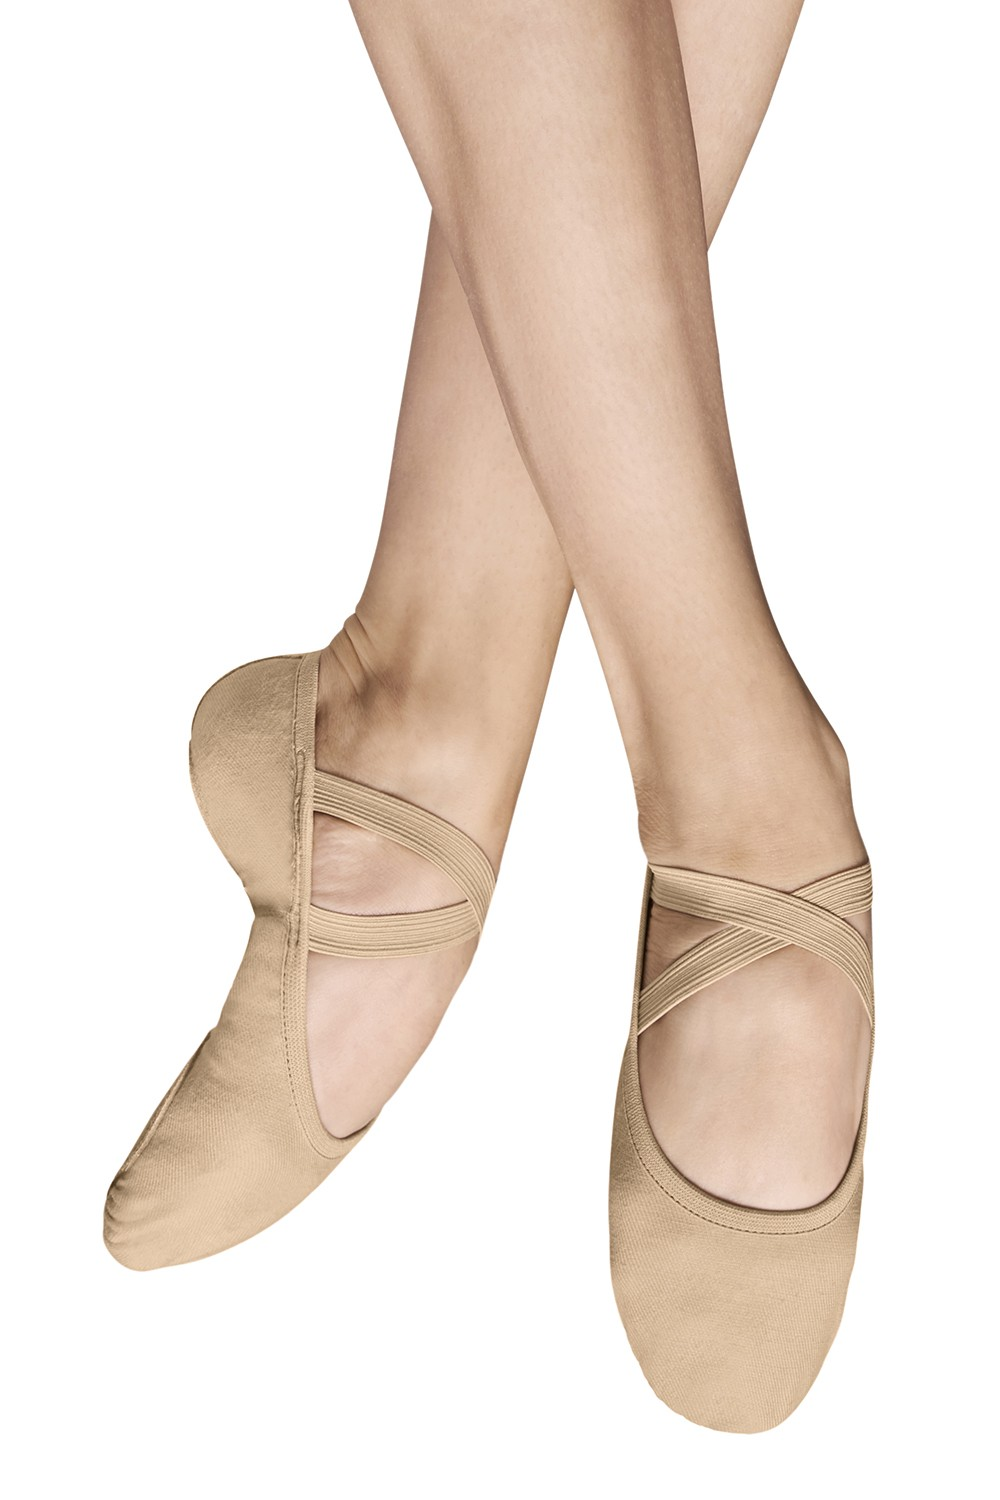 Performa - Homem Men's Ballet Shoes